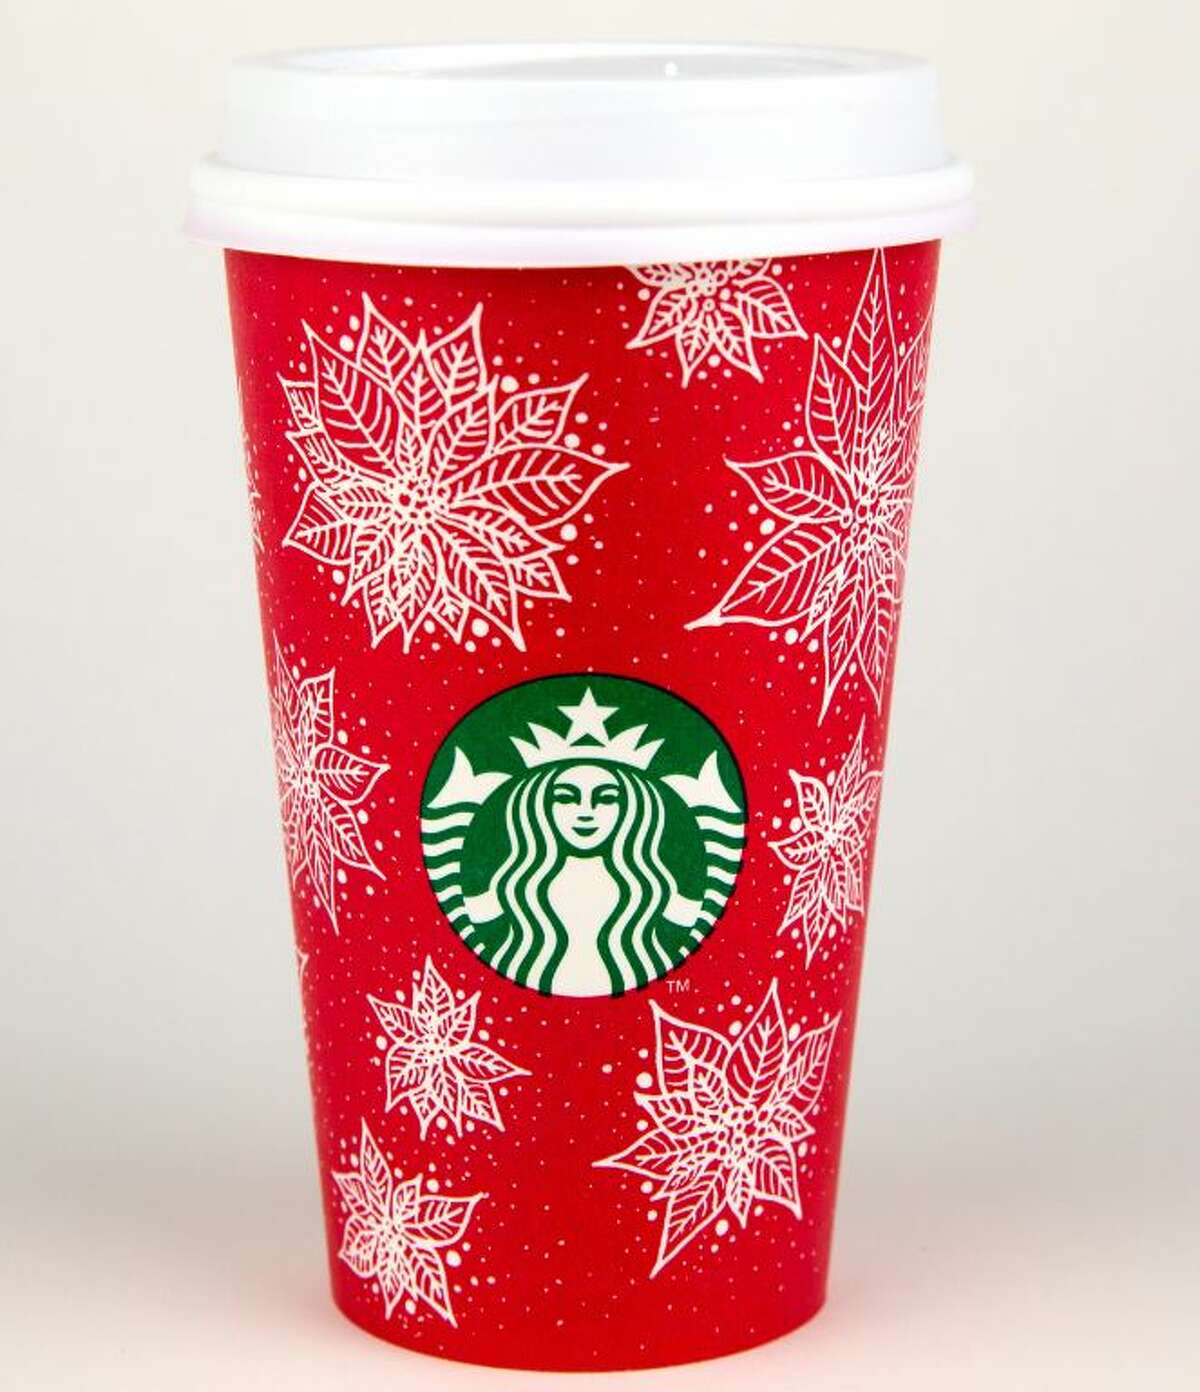 Texas A& University student Christina Anderson's poinsettia-themed cup design was chosen by Starbucks for its coffee shops across Latin America, China and East Asia.